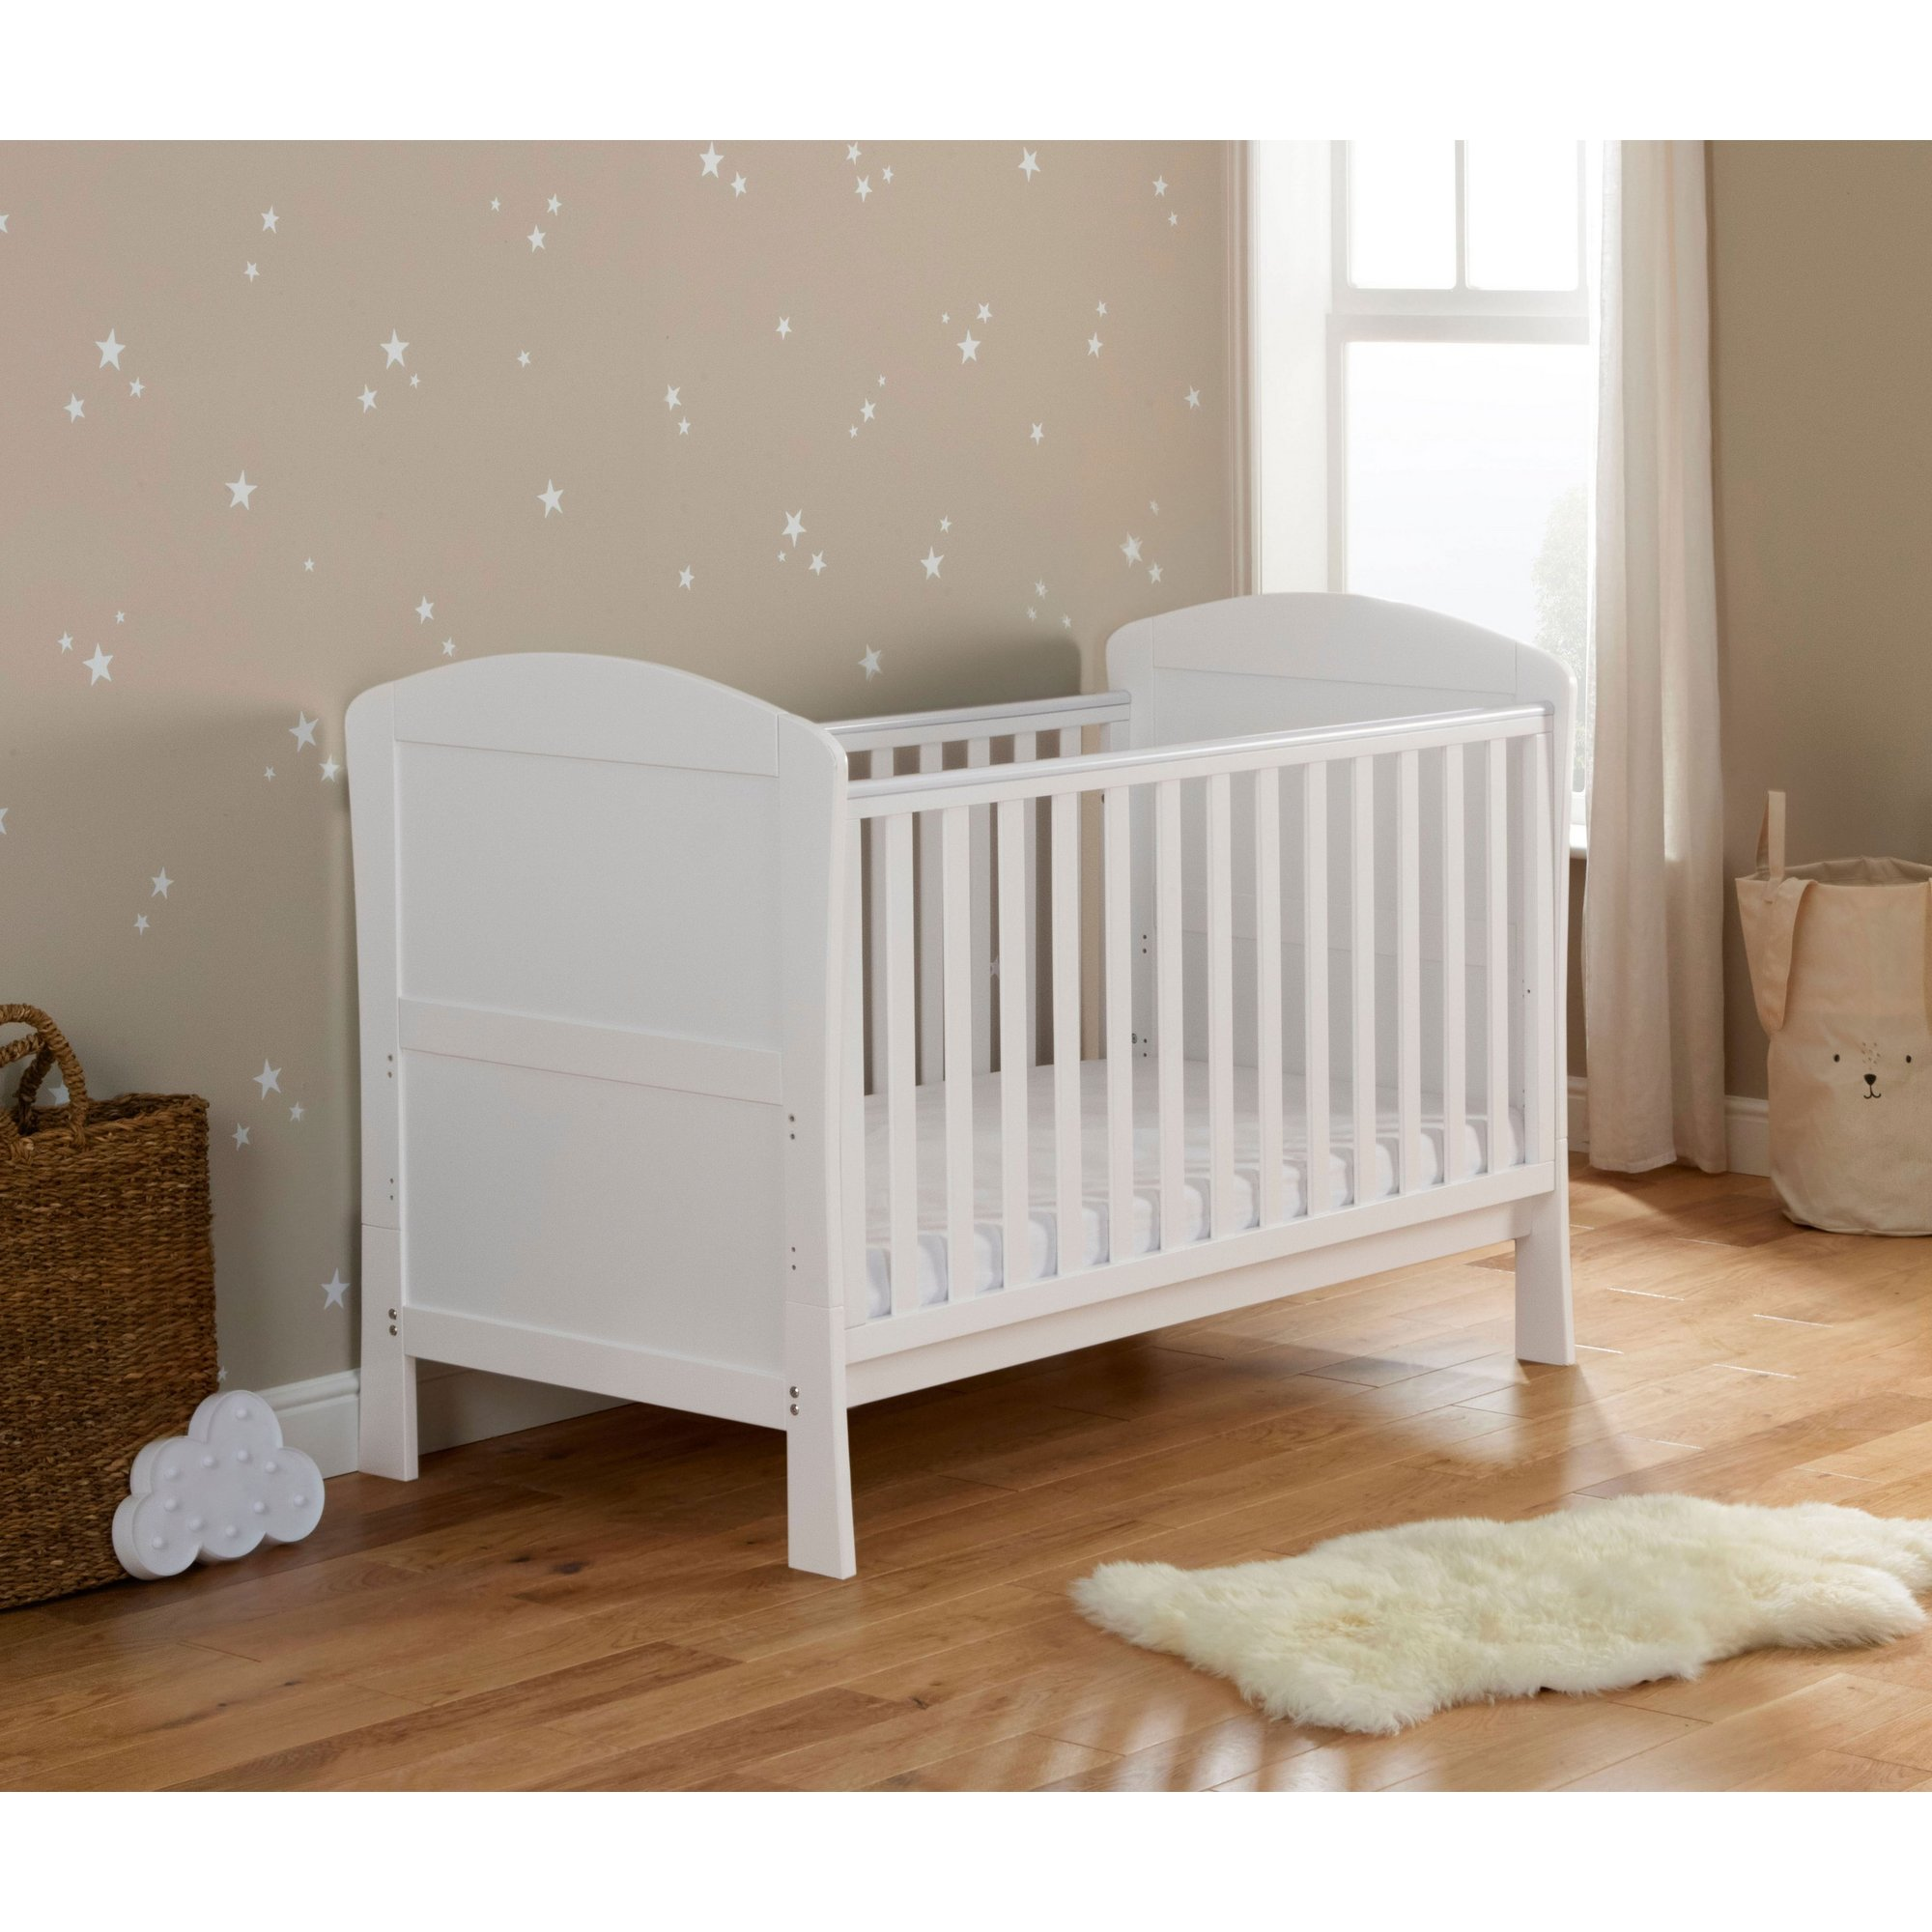 Image of Aston White Drop Side Cot Bed